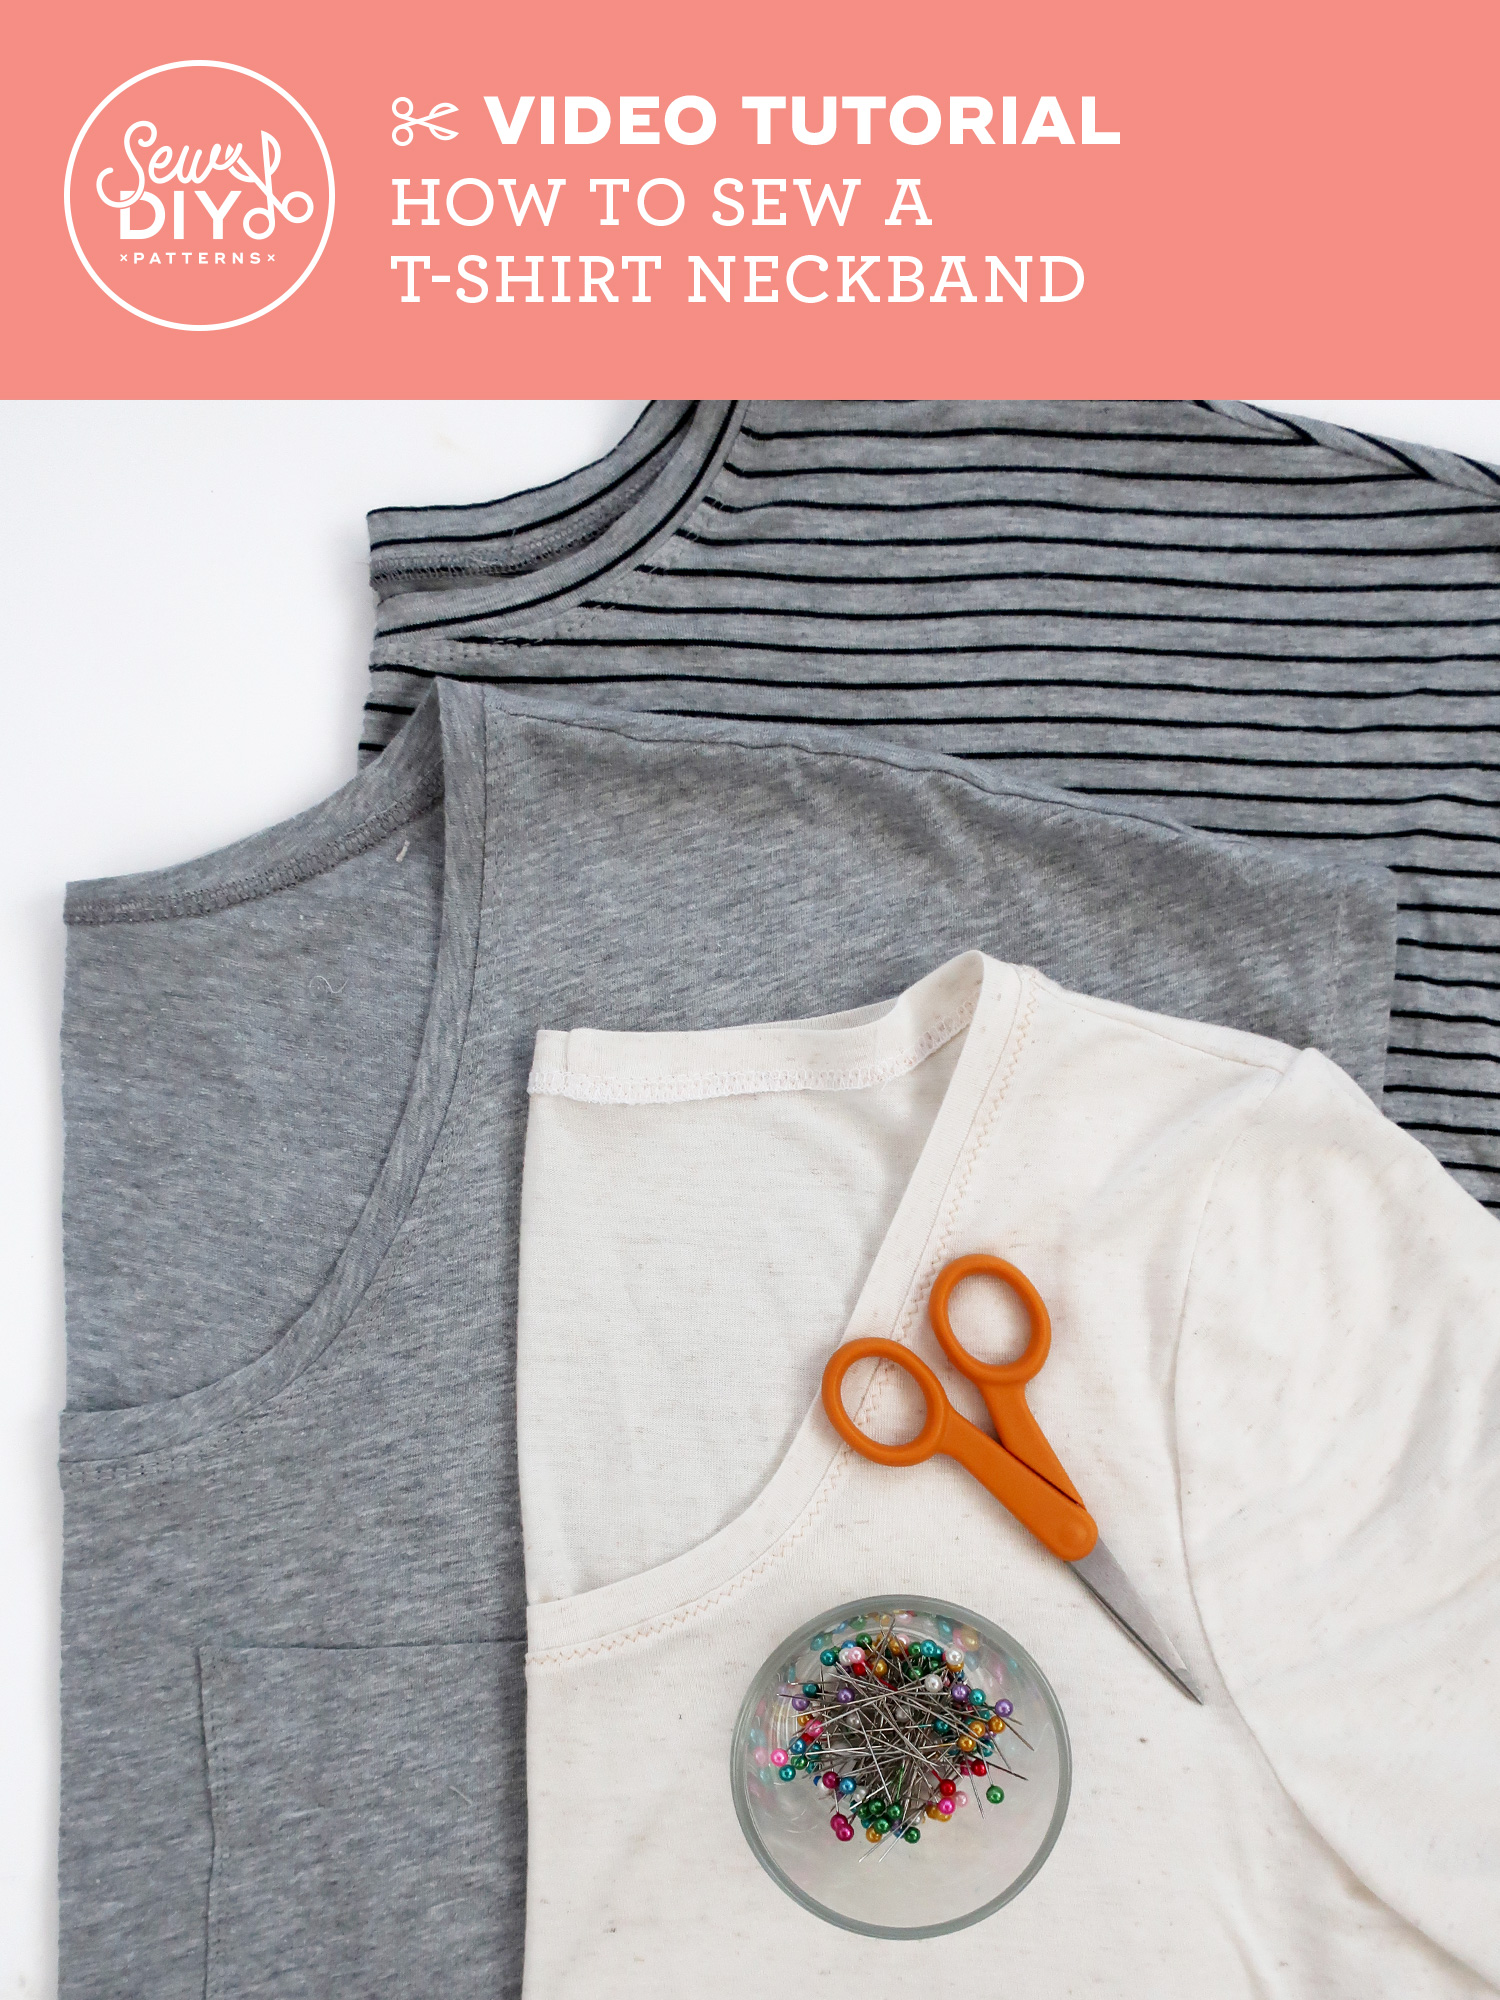 Video Tutorial - How to sew a t-shirt Neckband from Sew DIY